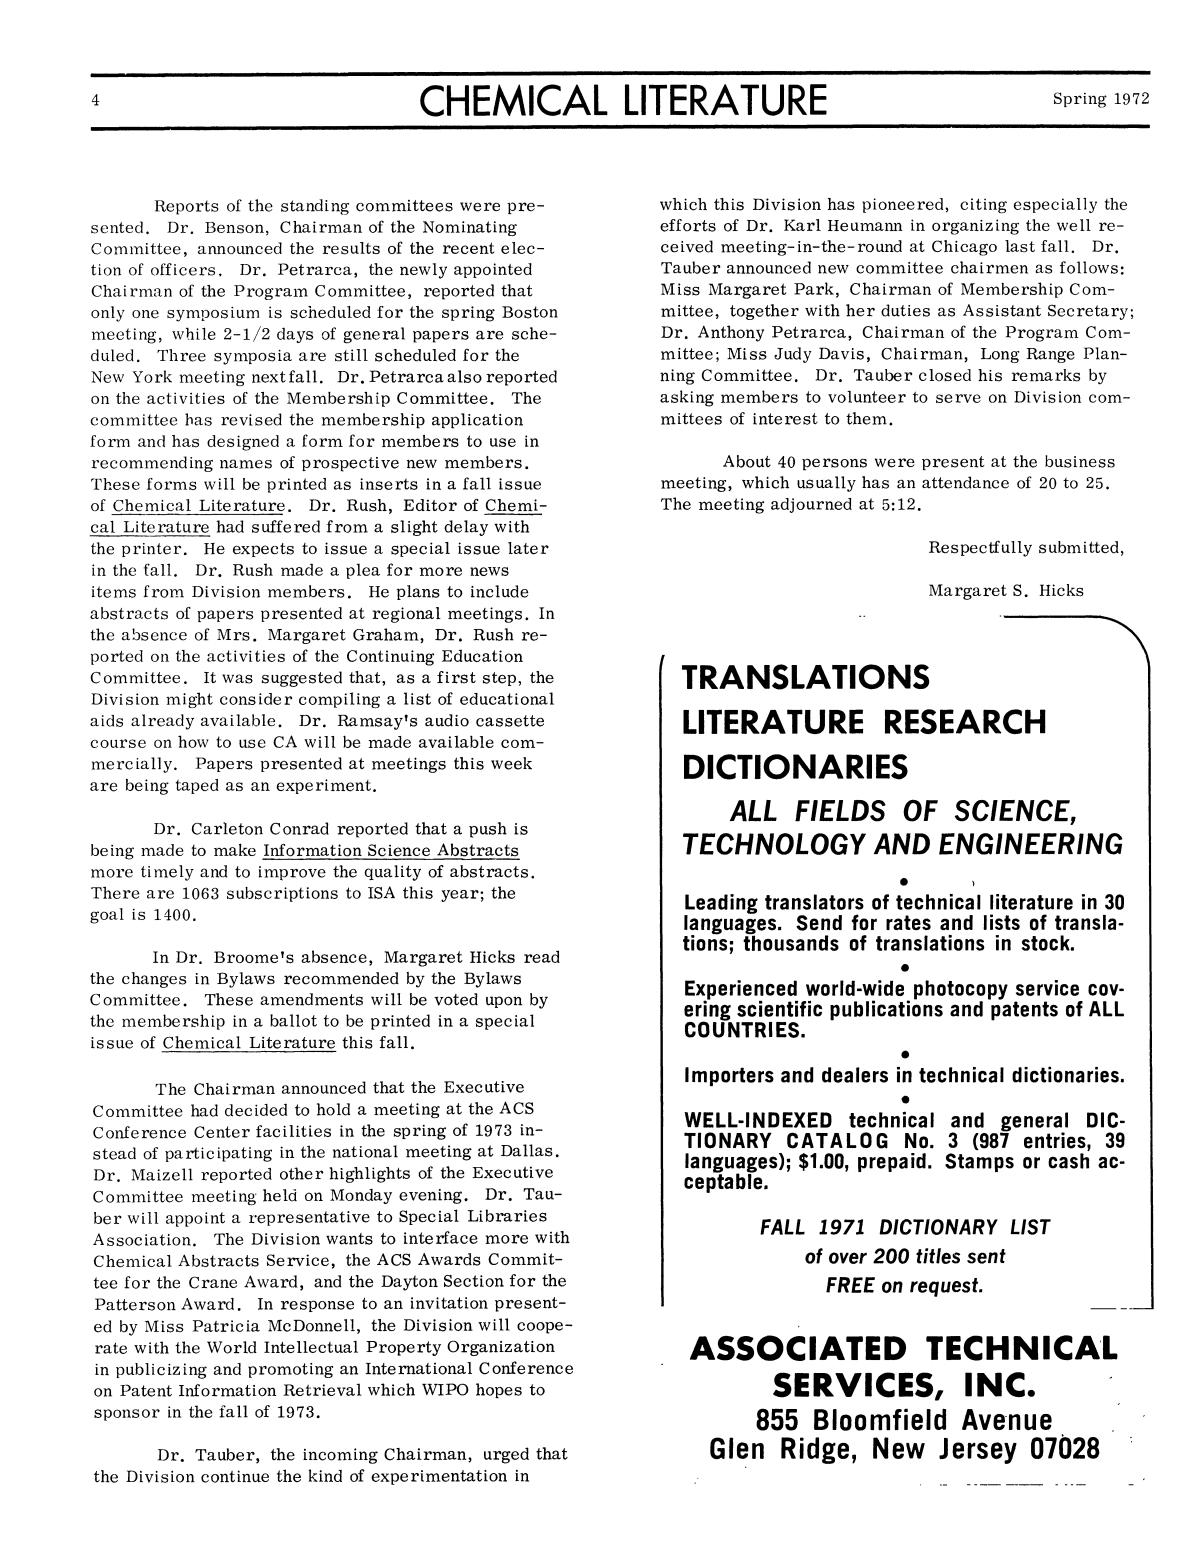 Chemical Literature, Volume 24, Number 1, Spring 1972                                                                                                      4